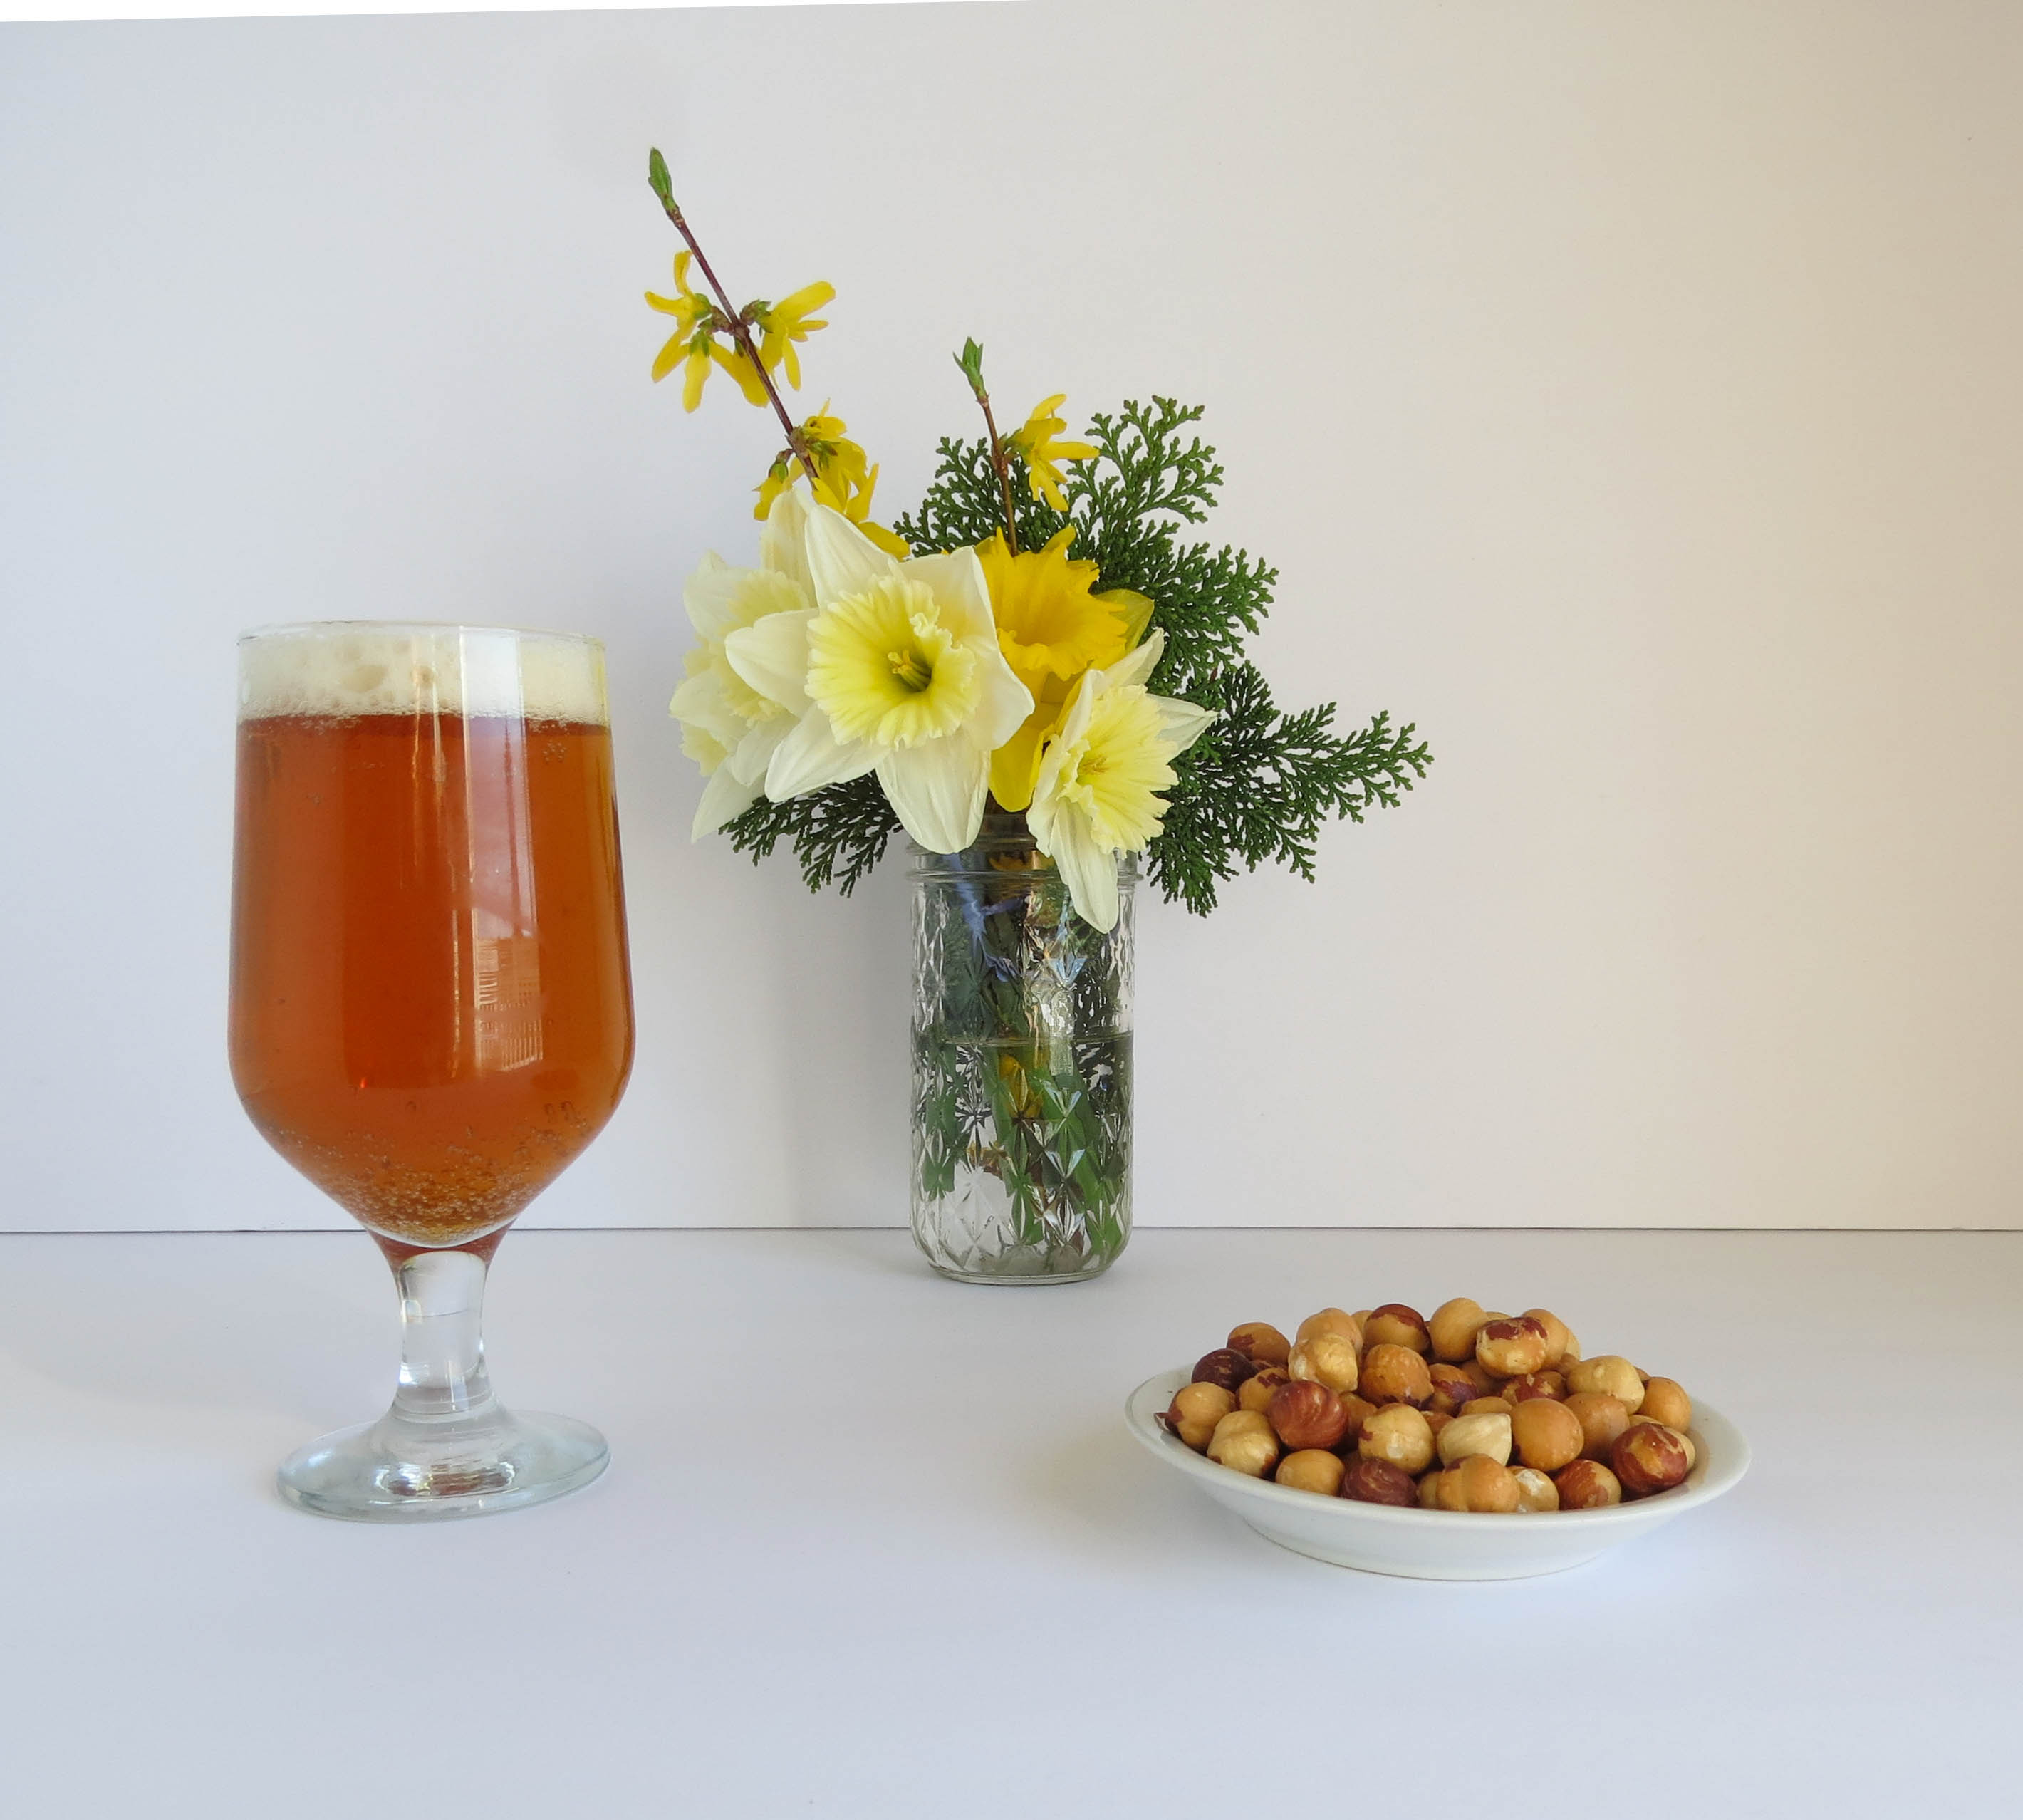 Golden ale and hazelnuts